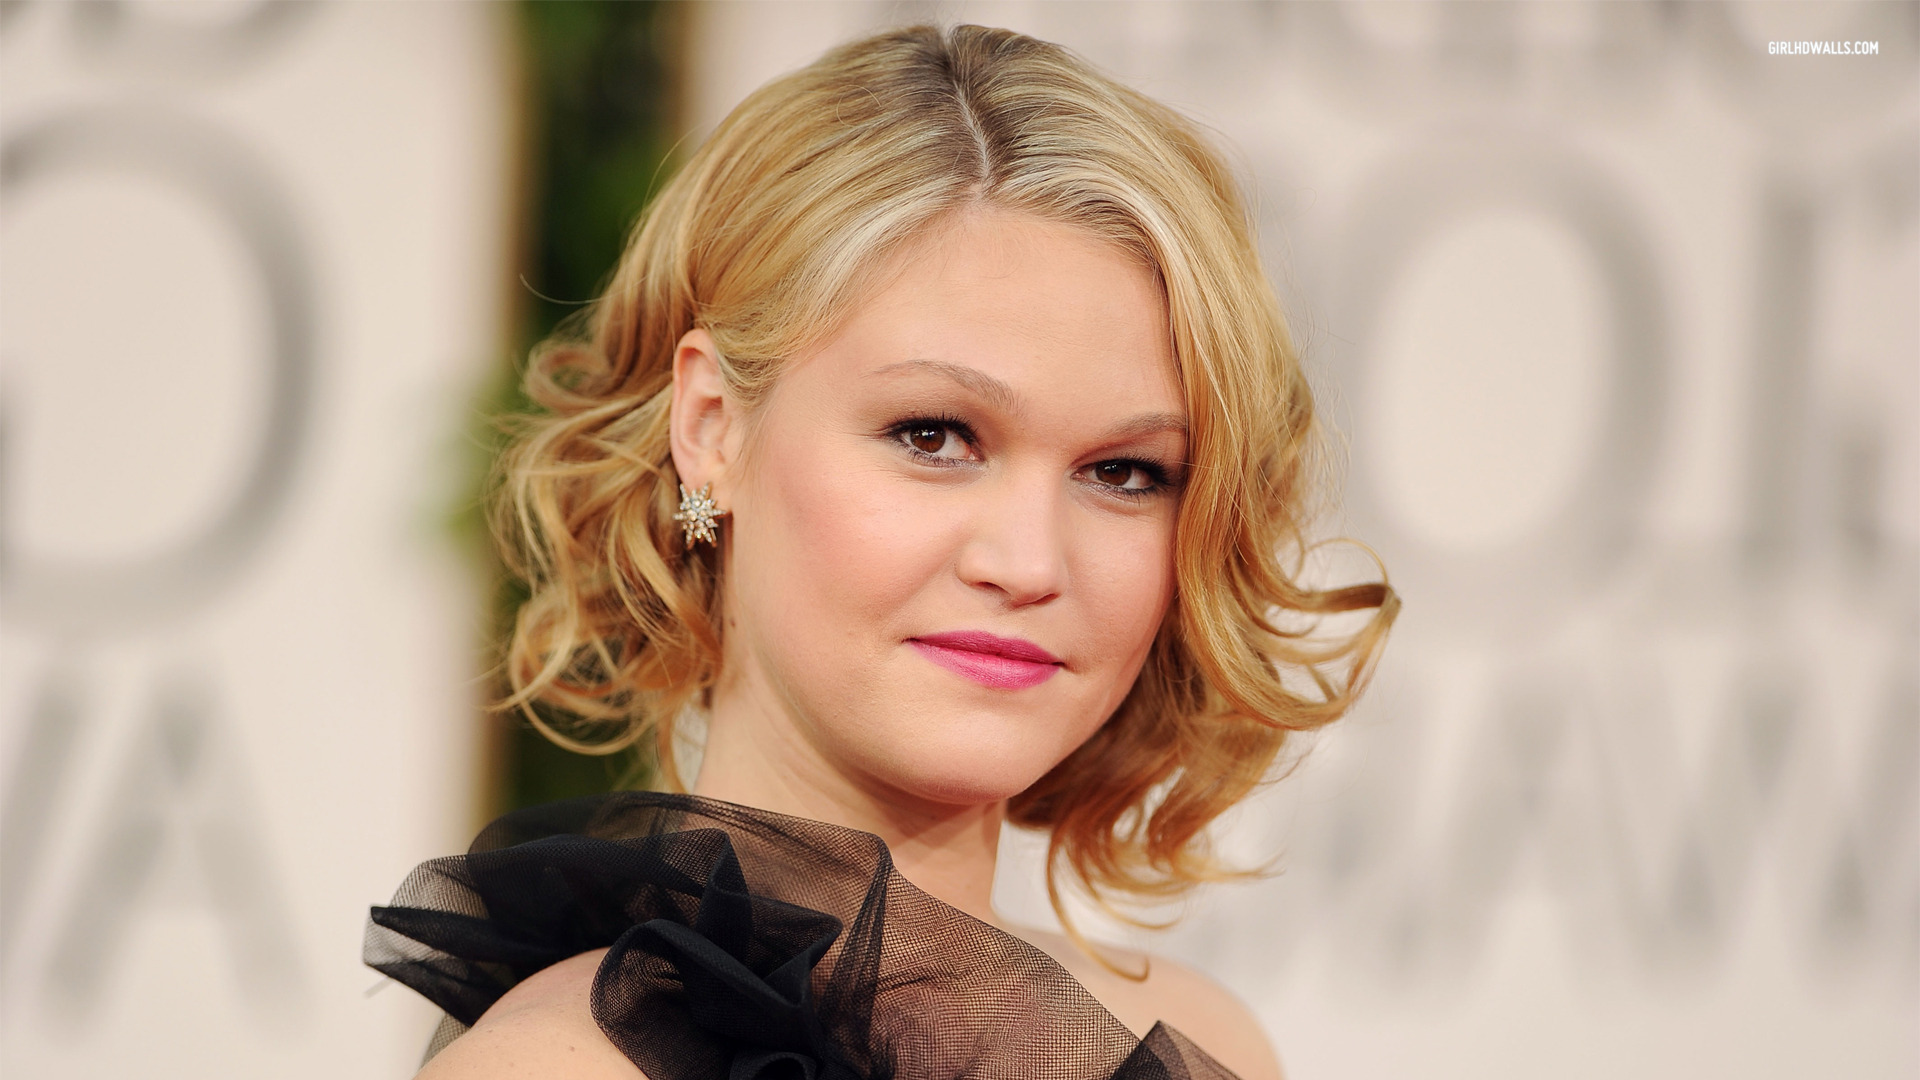 Julia Stiles Wallpapers High Resolution And Quality Download